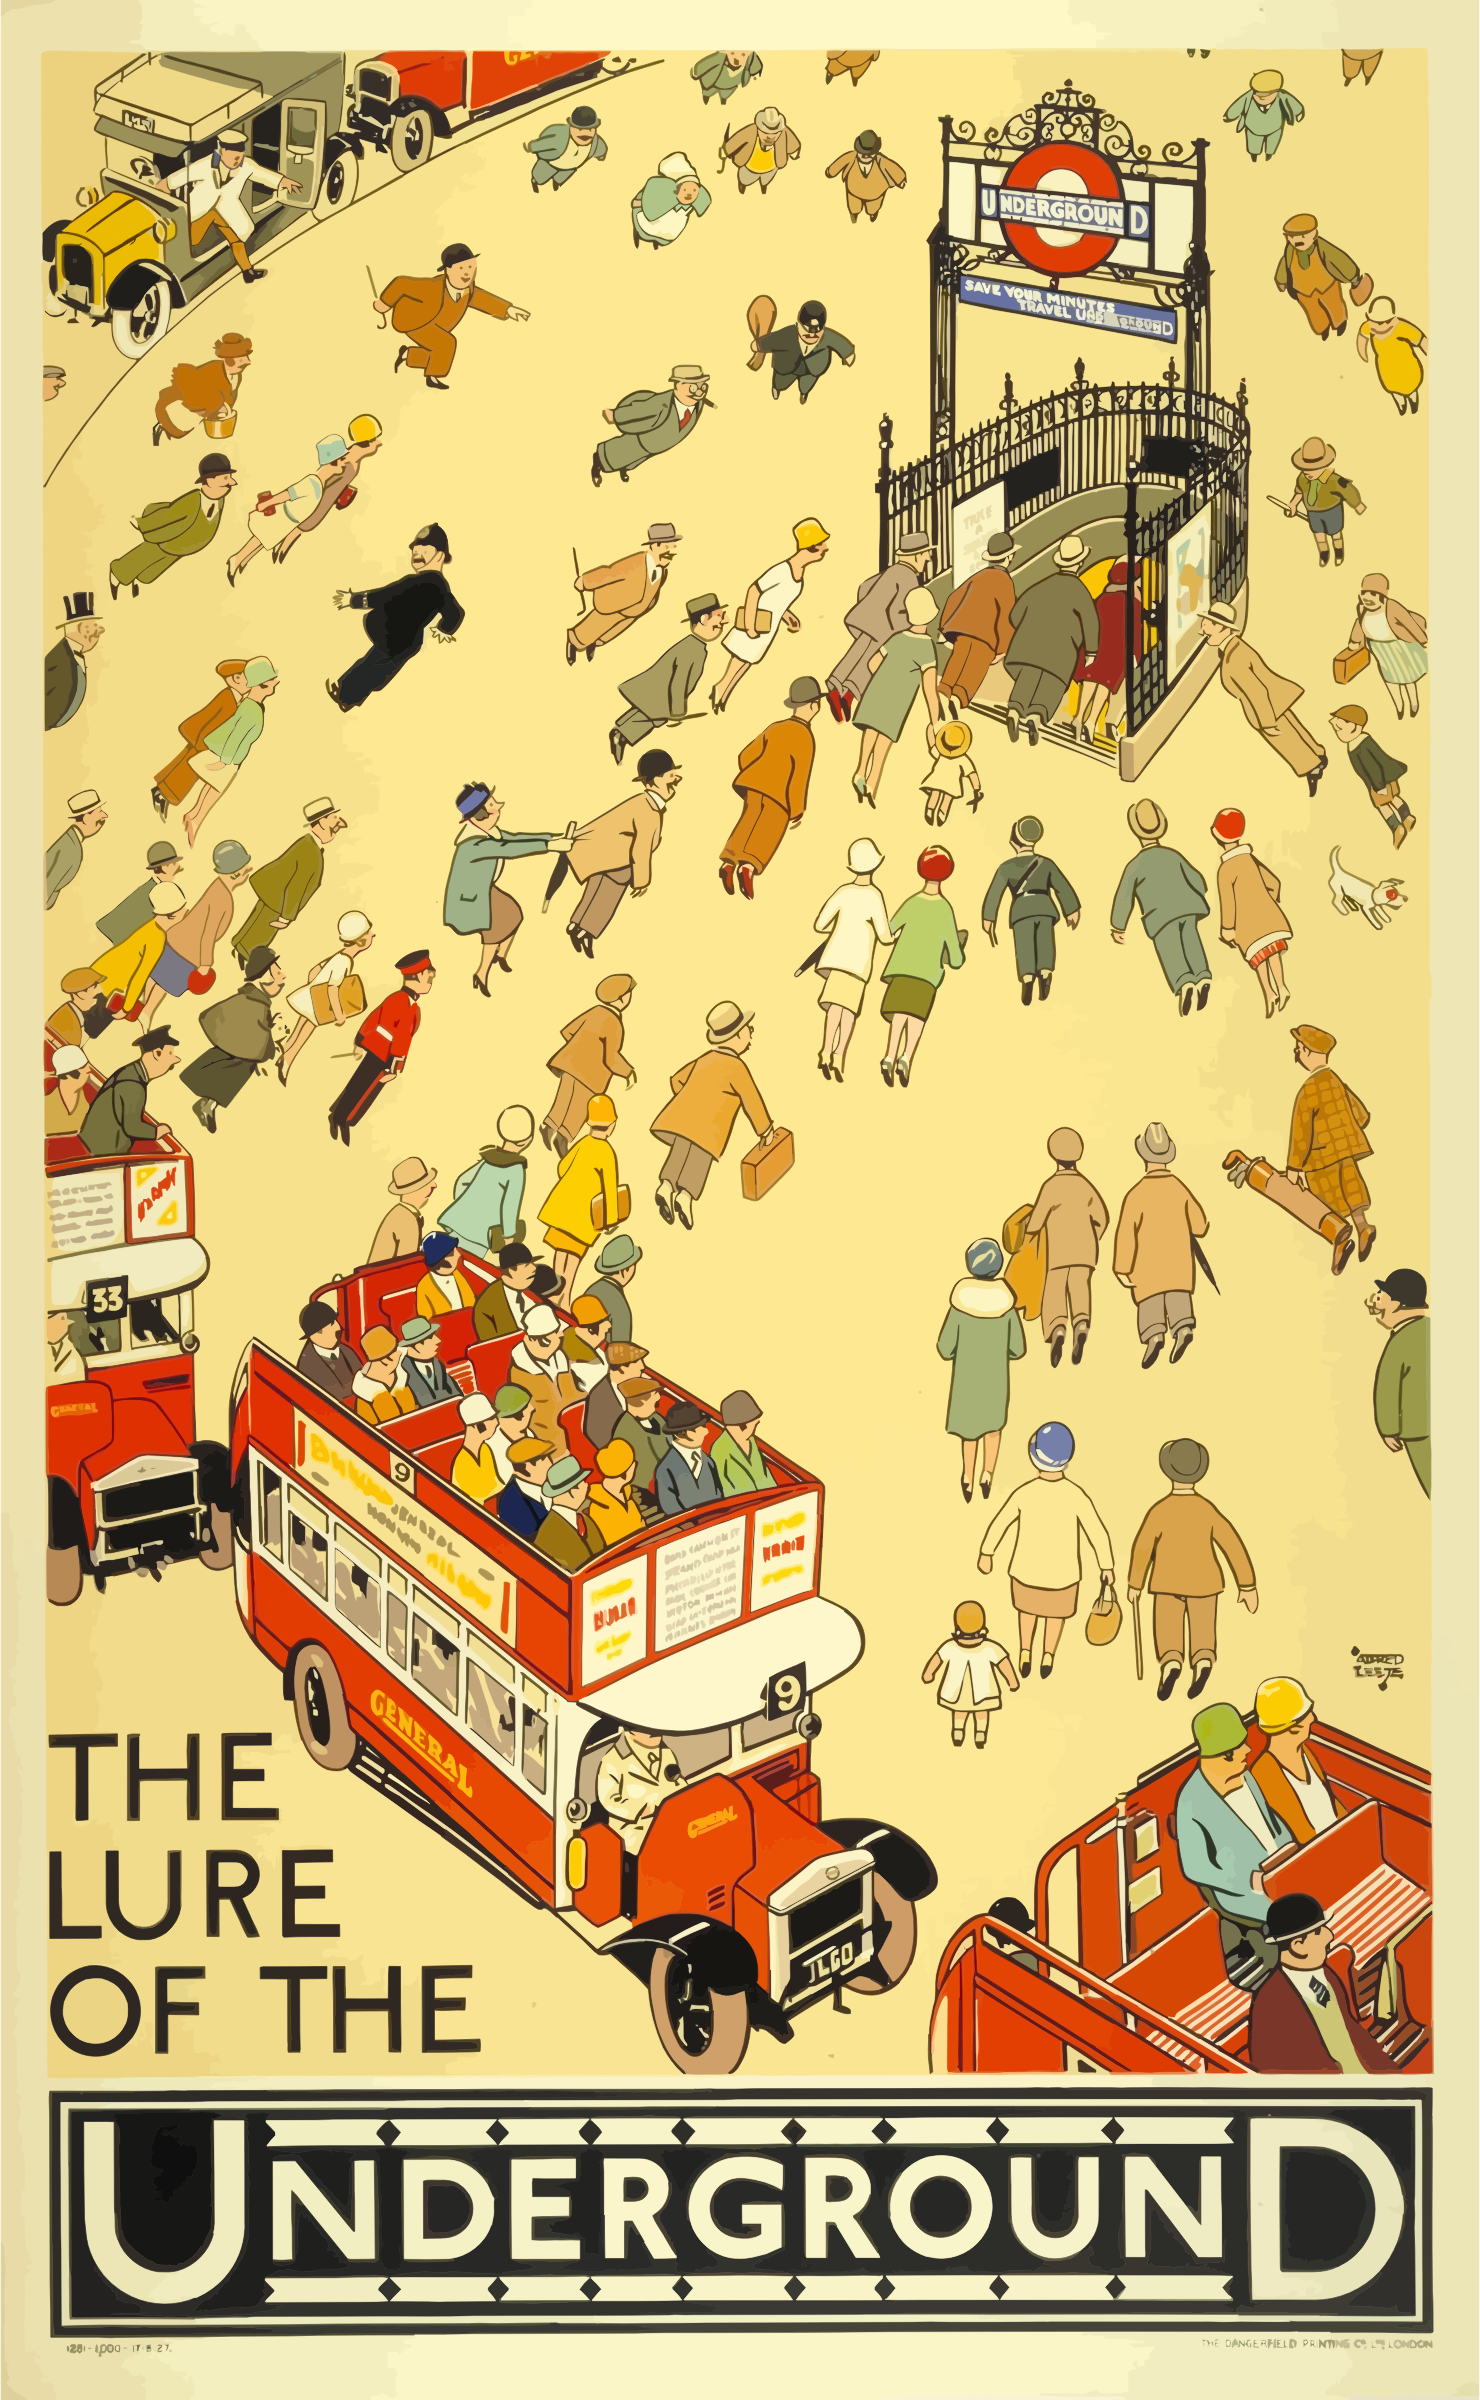 Vintage Travel Poster London Underground by GDJ